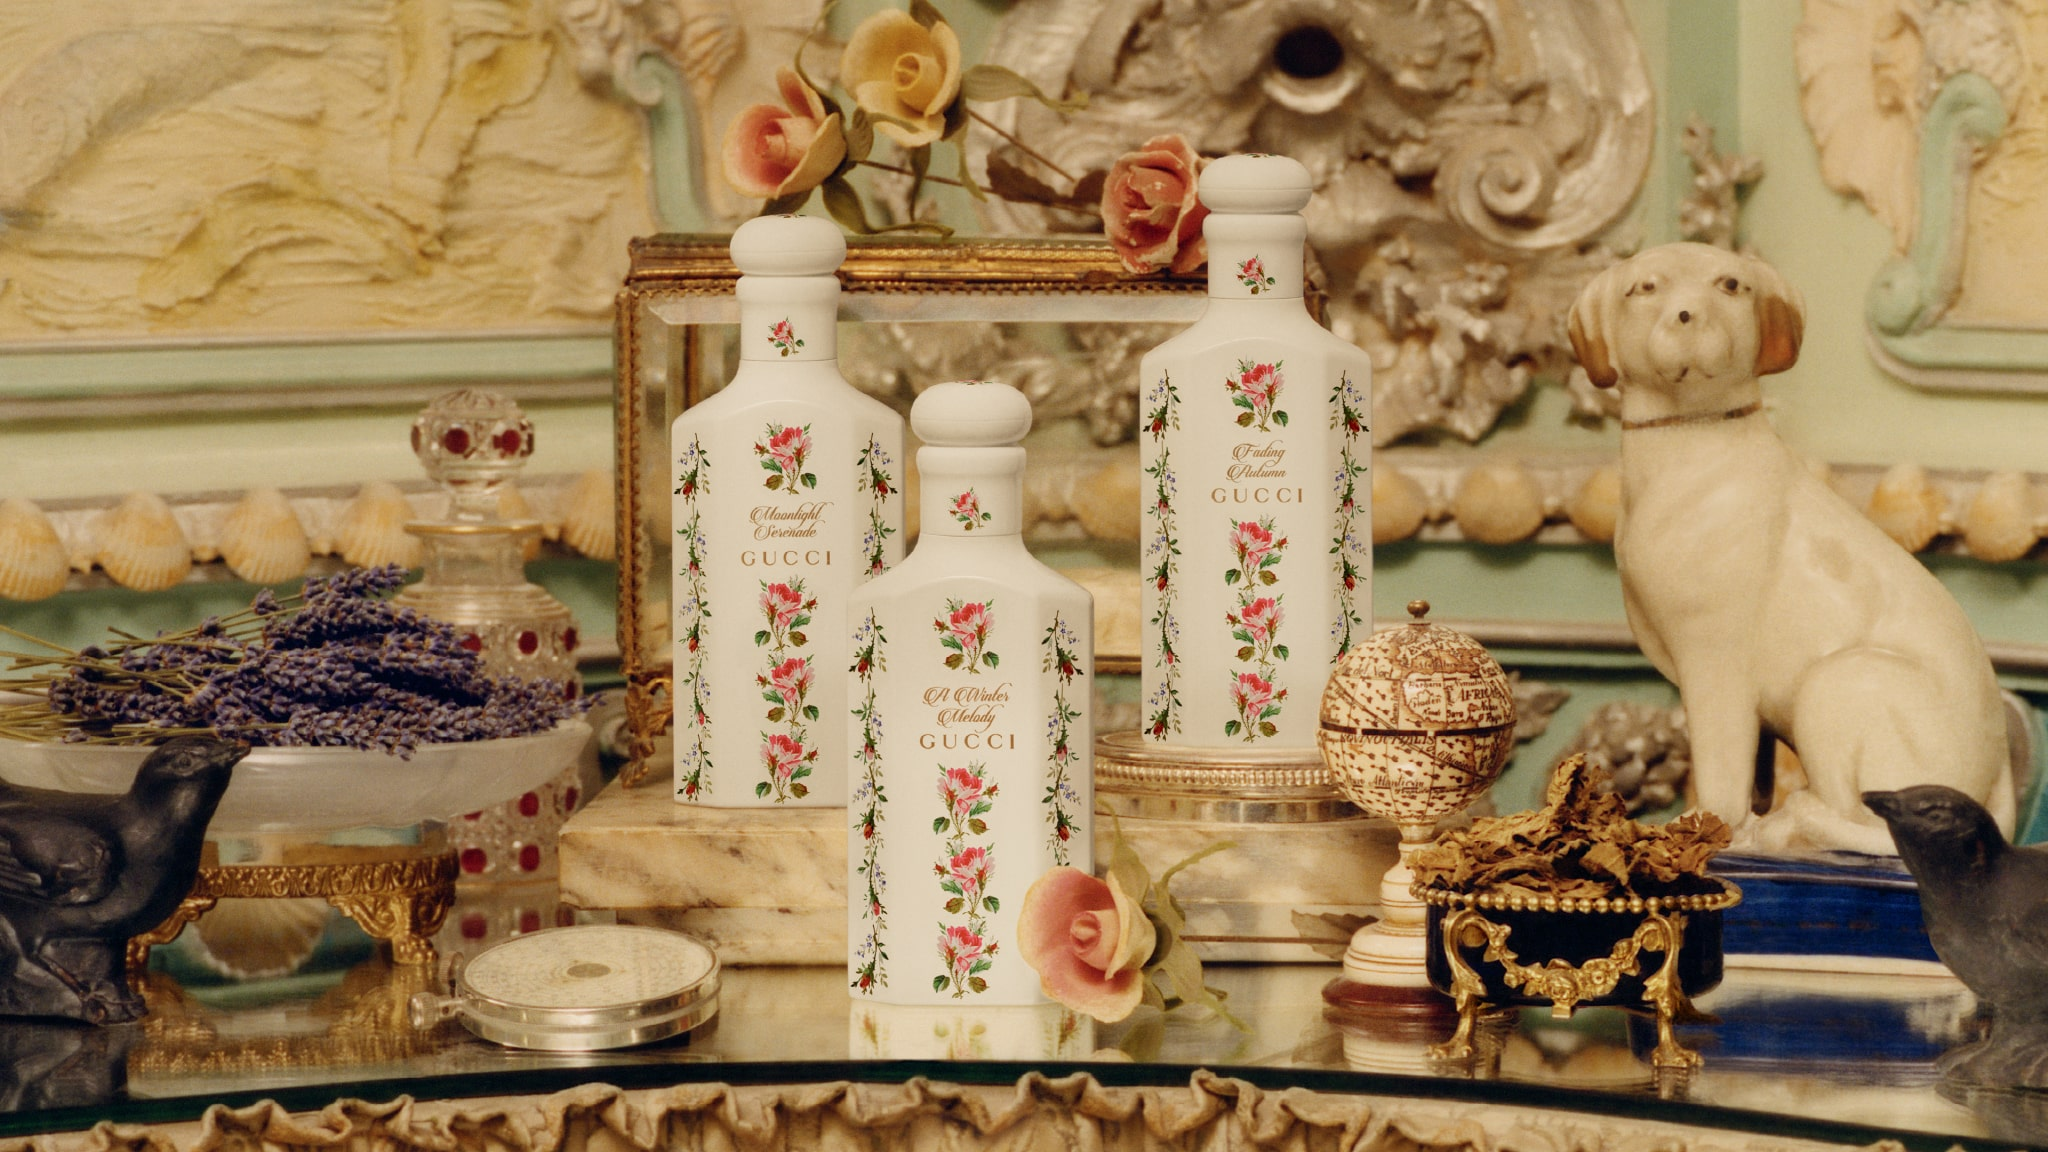 Gucci's Haute Perfumery line is the elevated bucolic touch you need